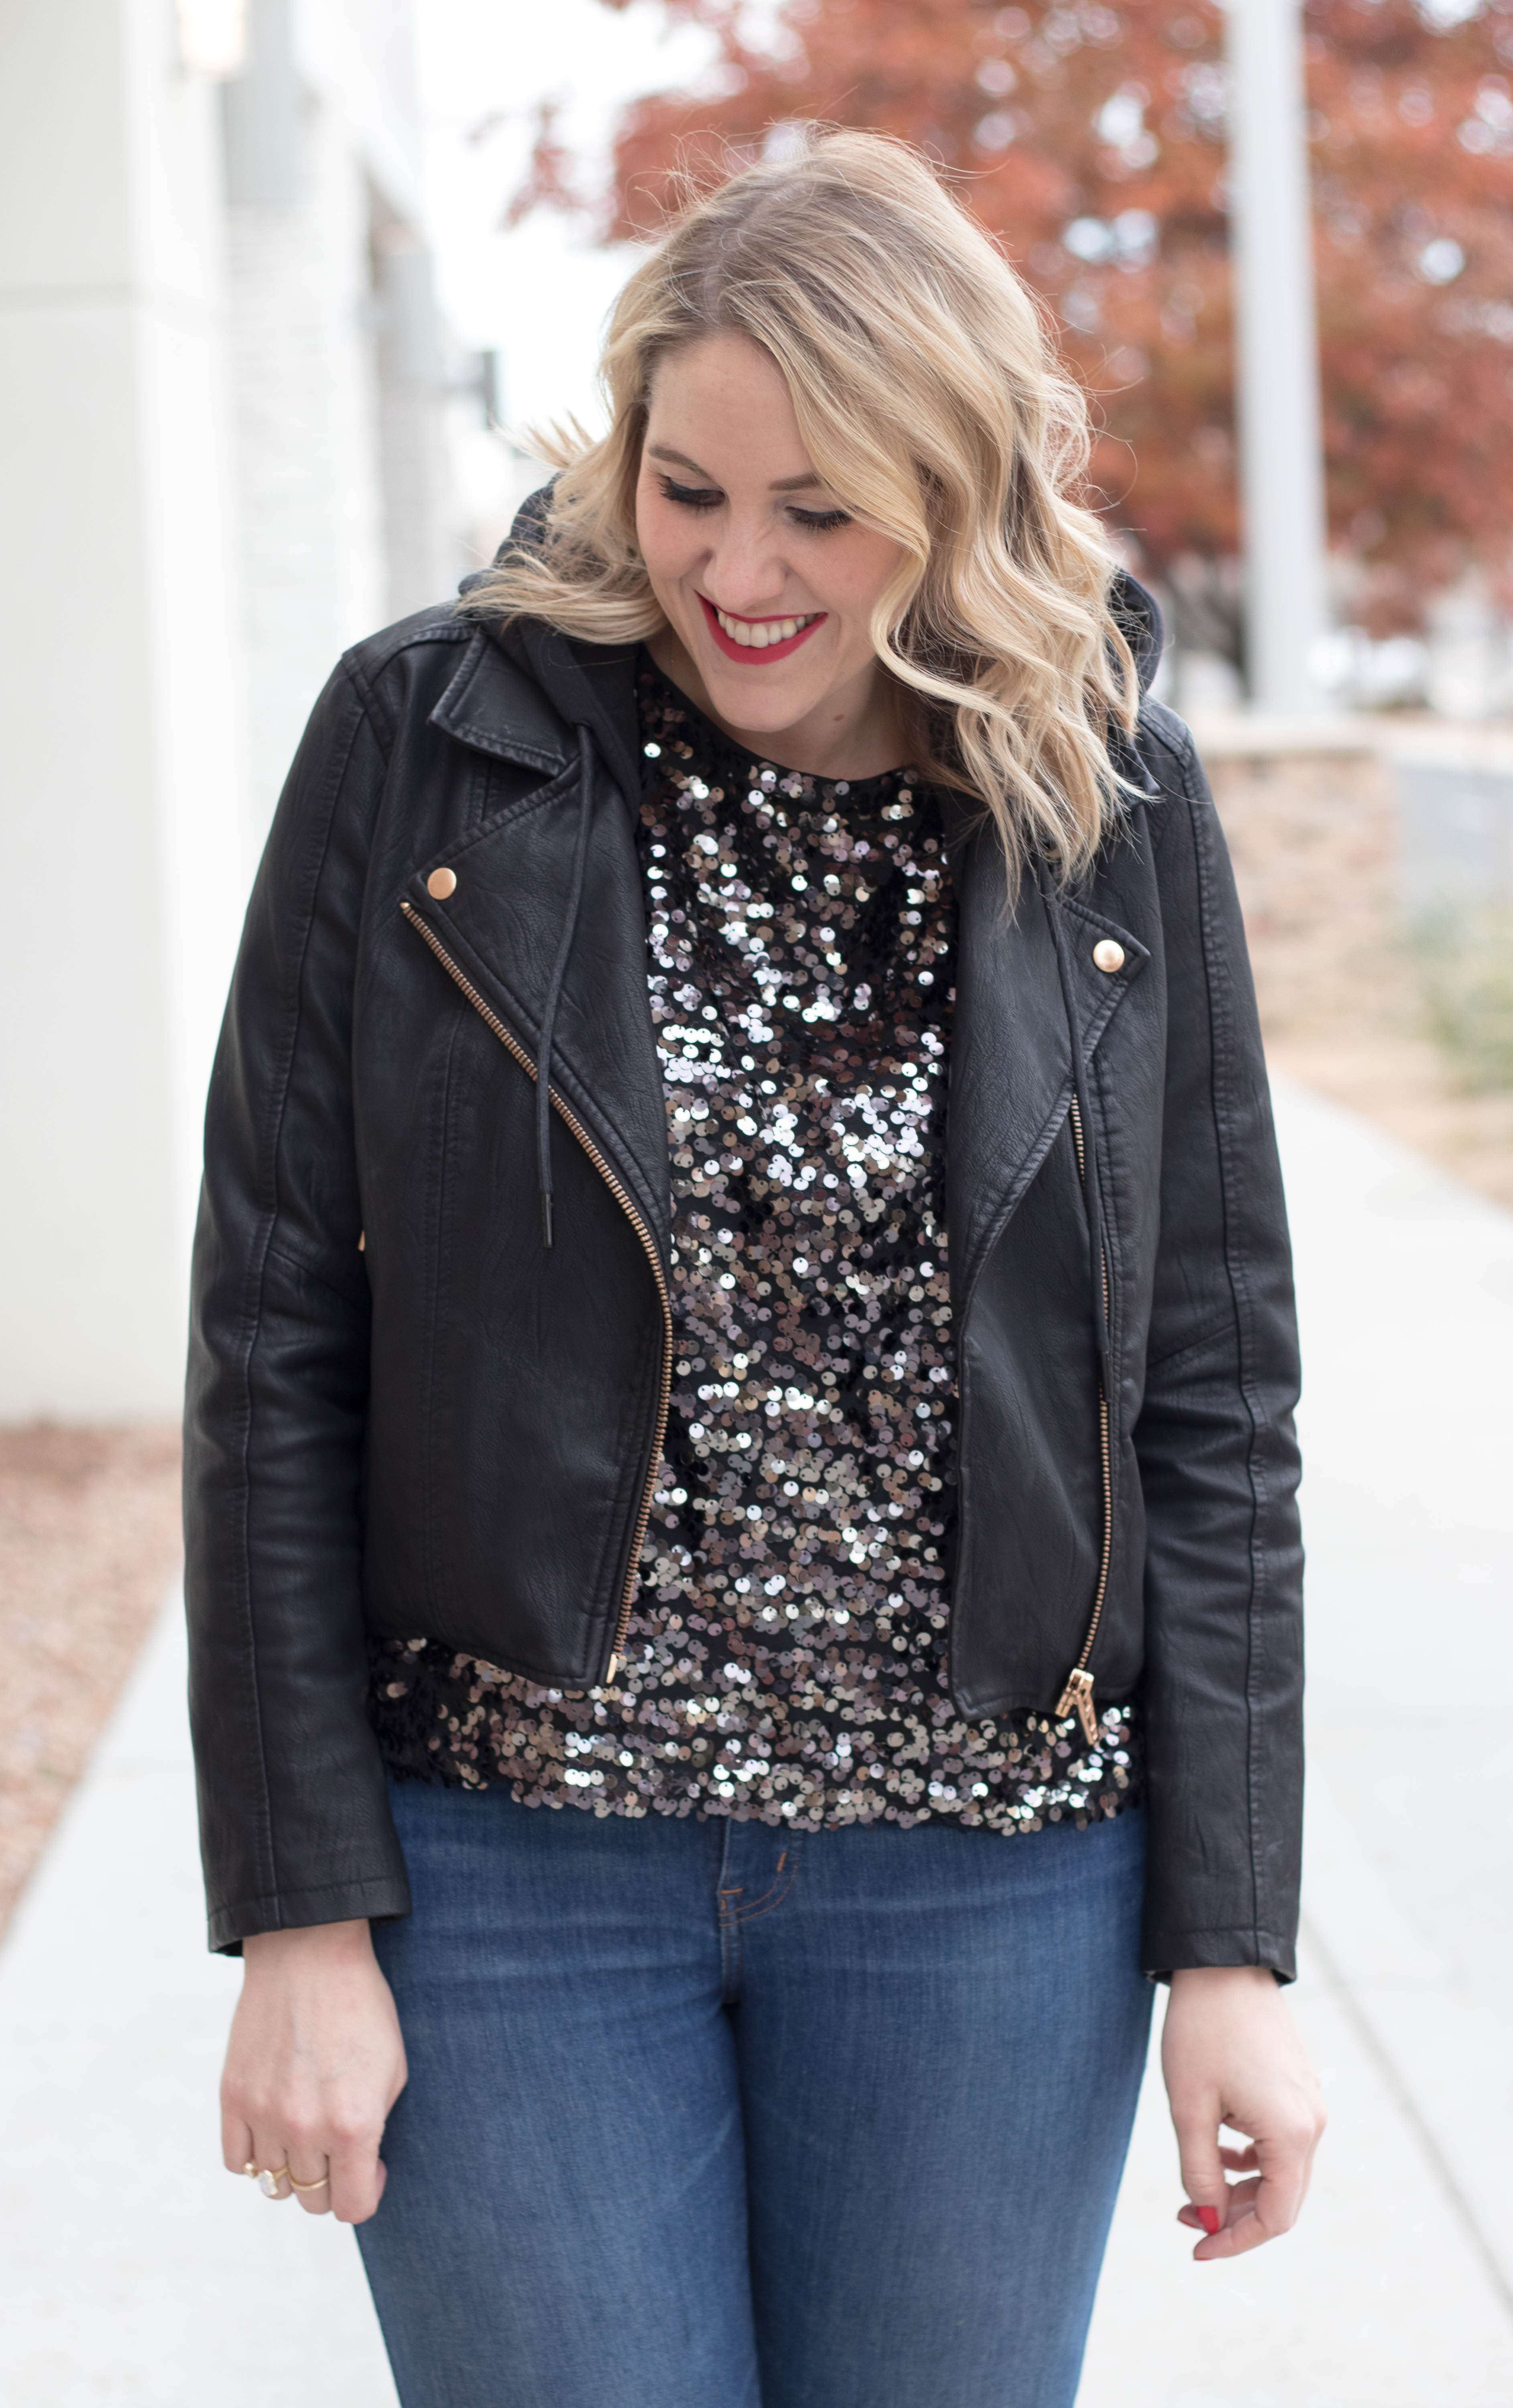 sequin top leather hooded jacket outfit #sequins #holidaystyle #sequintop